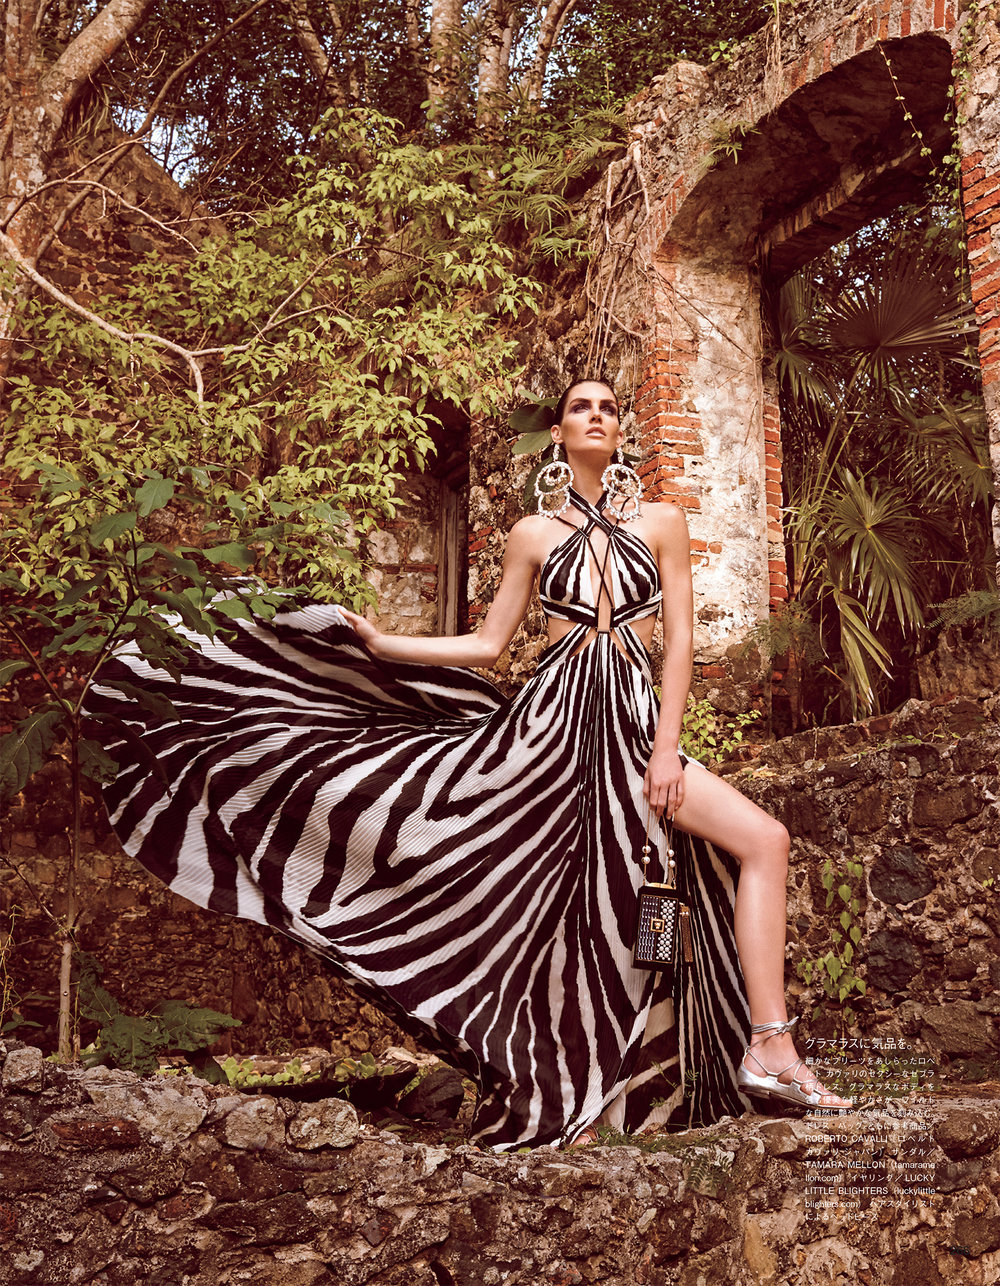 Giovanna-Battaglia-Vogue-Japan-Mariano-Vivanco-Forbidden-Paradise-8.jpg